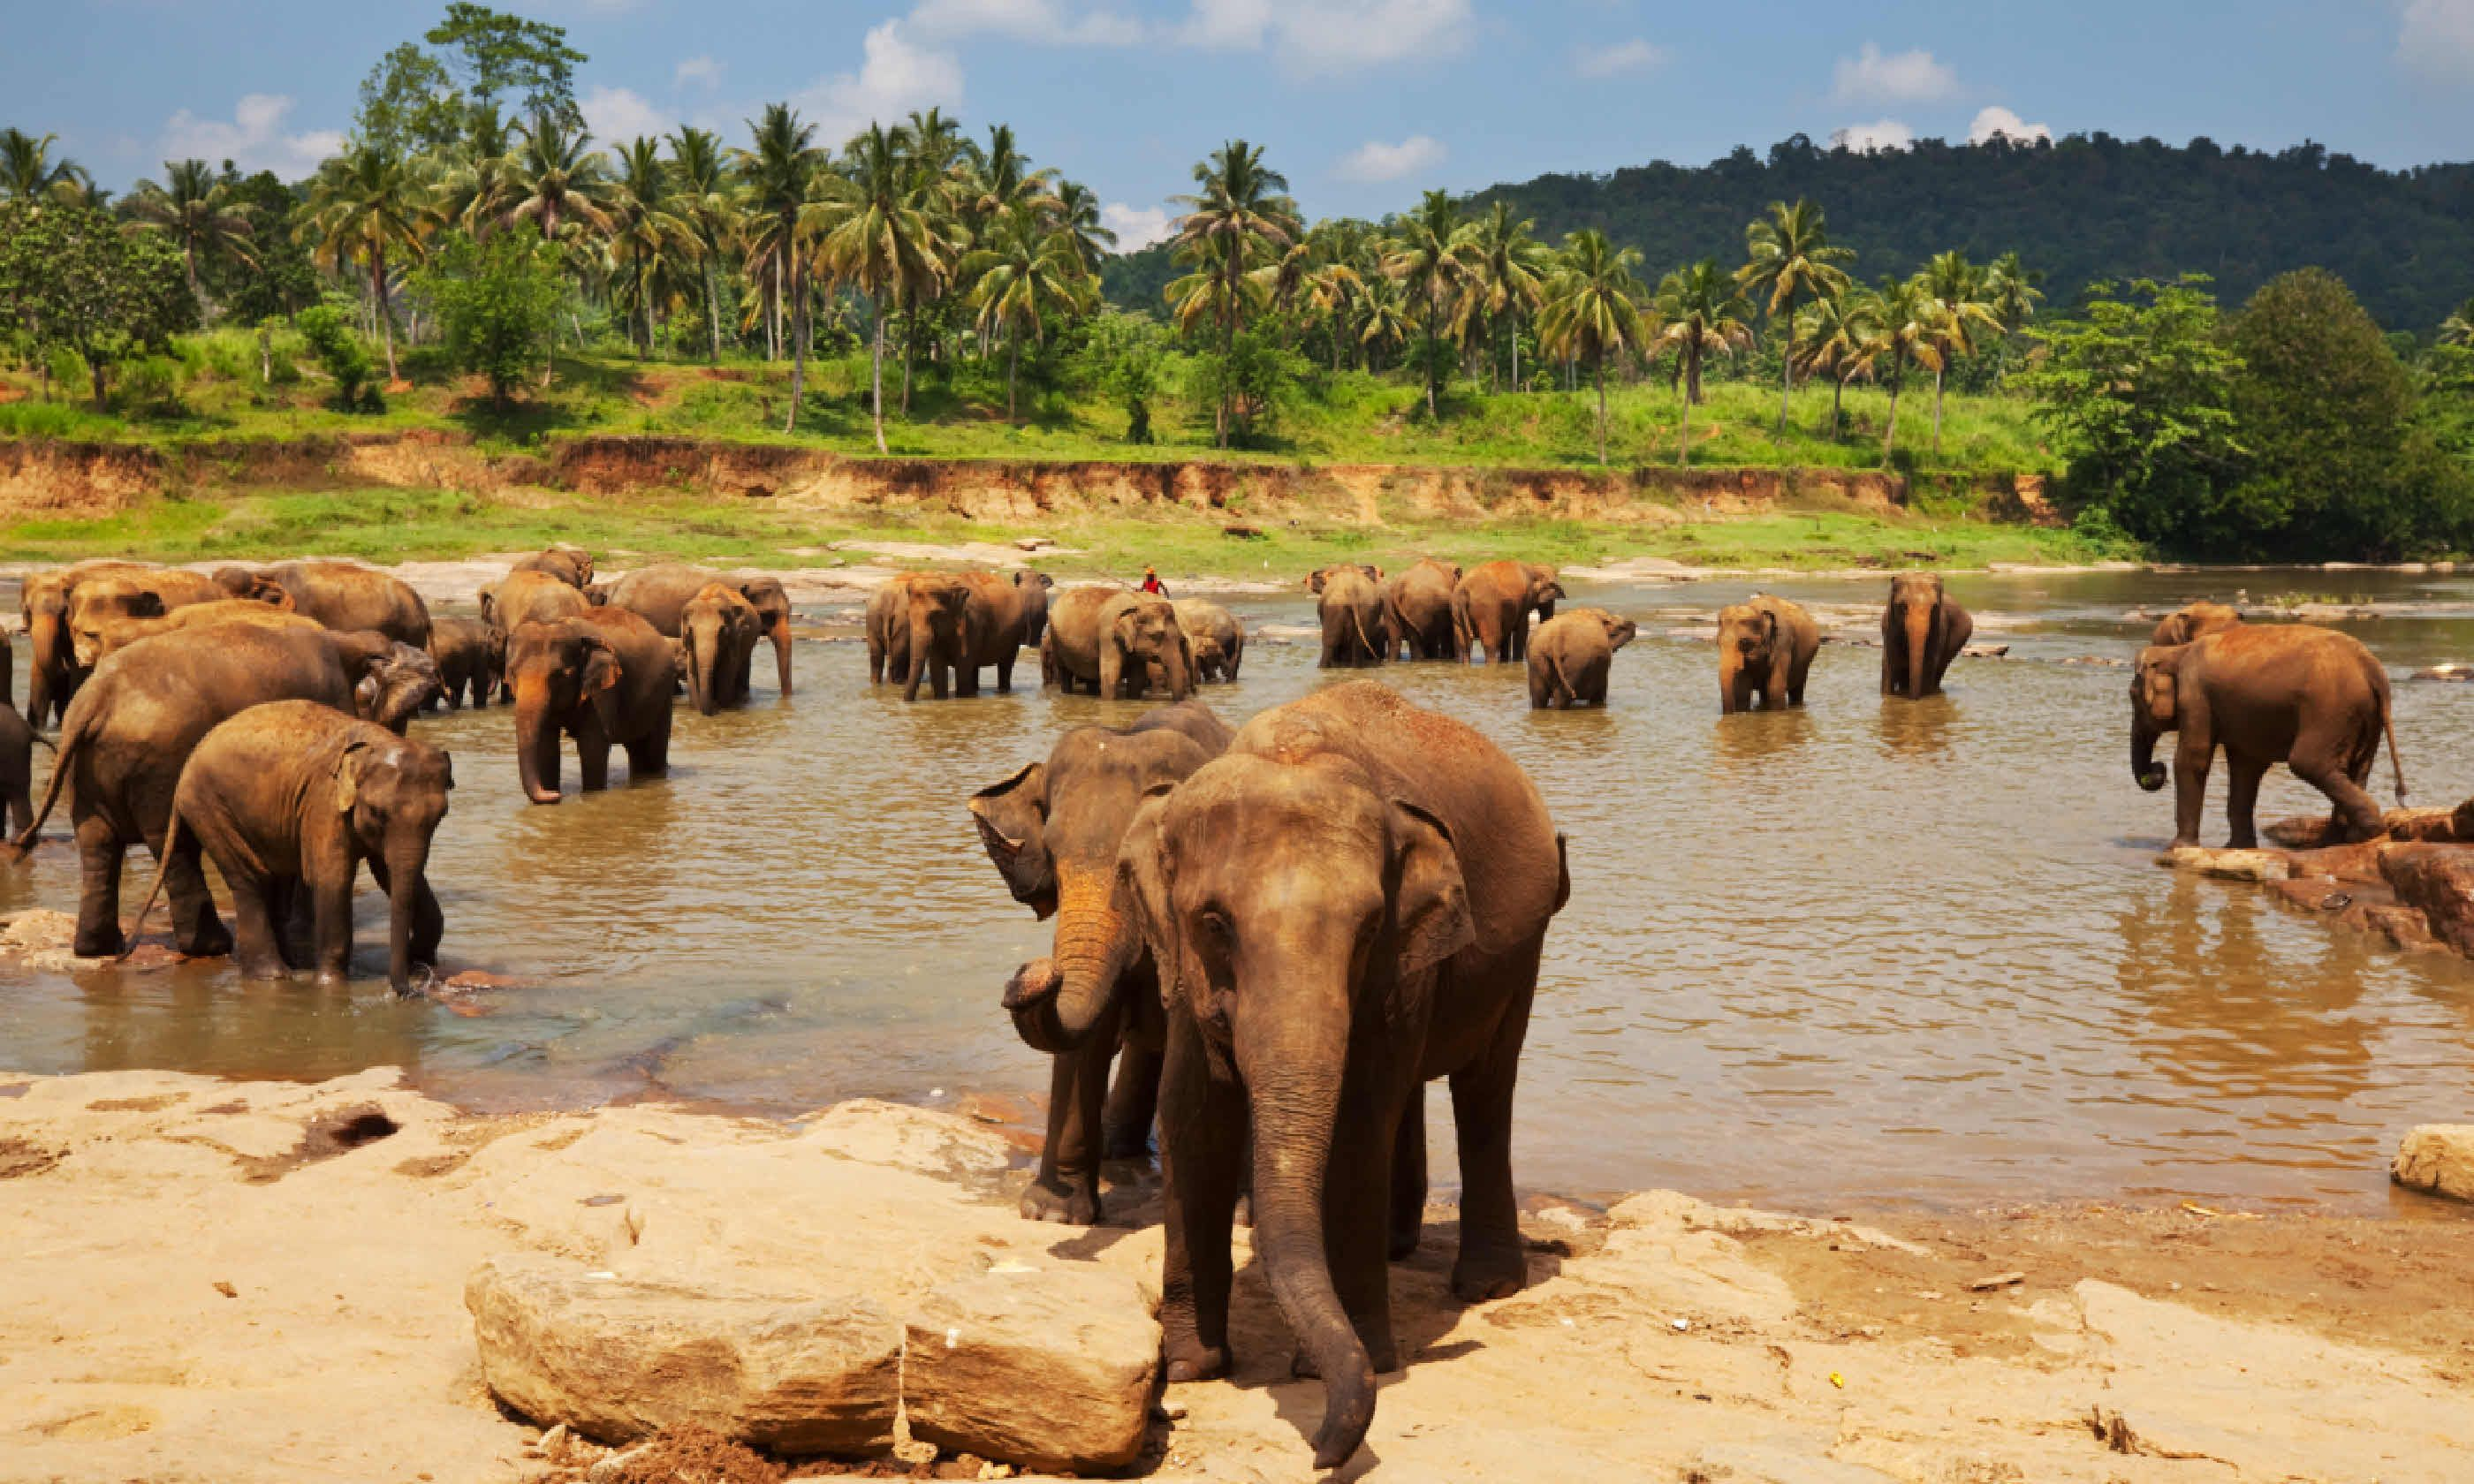 Elephants in Sri Lanka (Shutterstock)